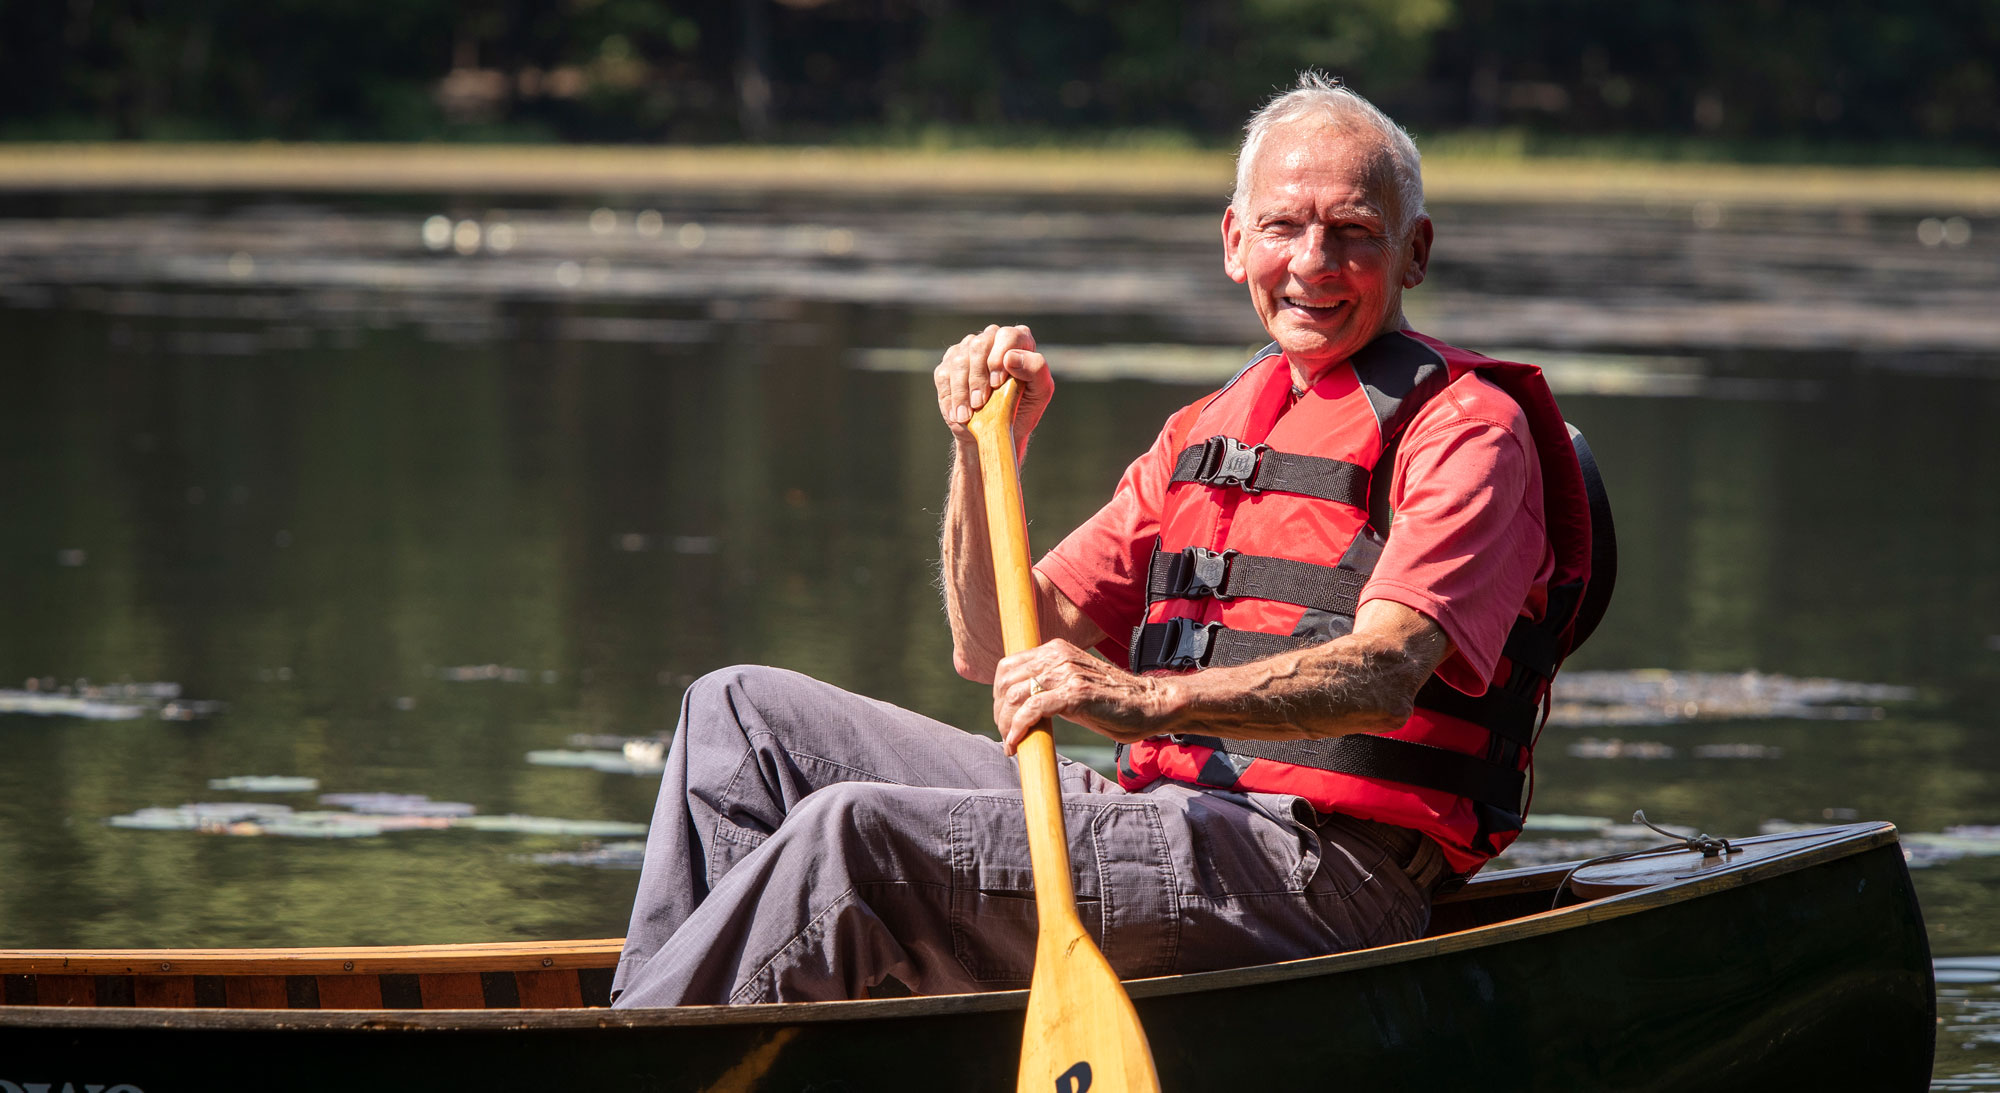 Independent Living Resident canoeing at Birch Hill, Manchester NH